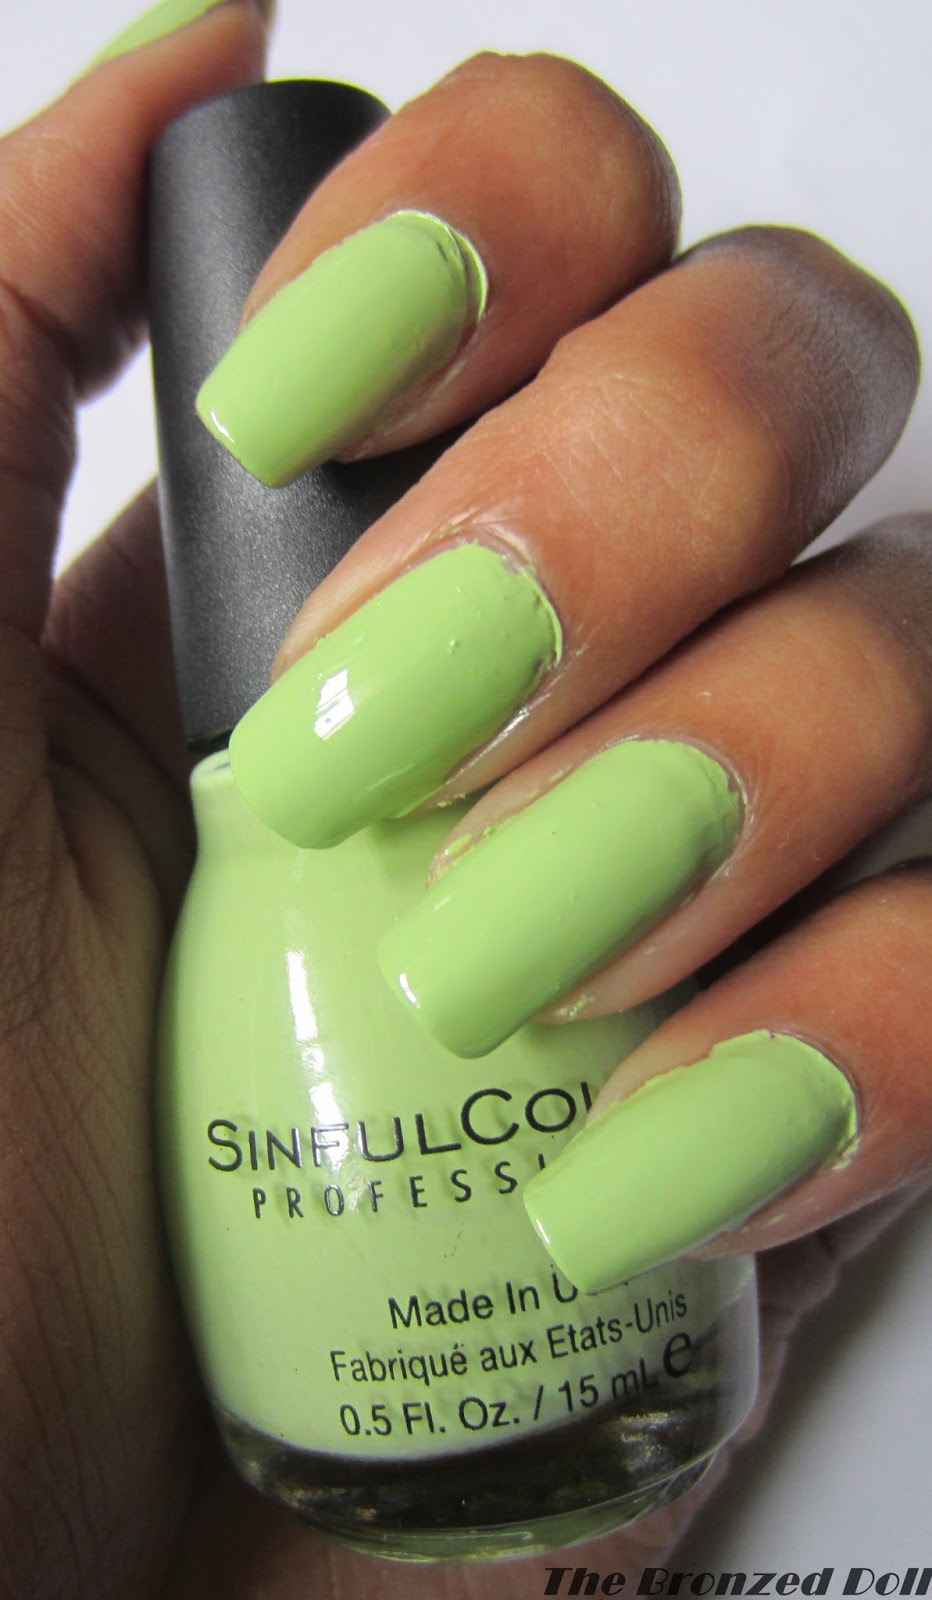 sinful colors song of summer nail polish pastel green